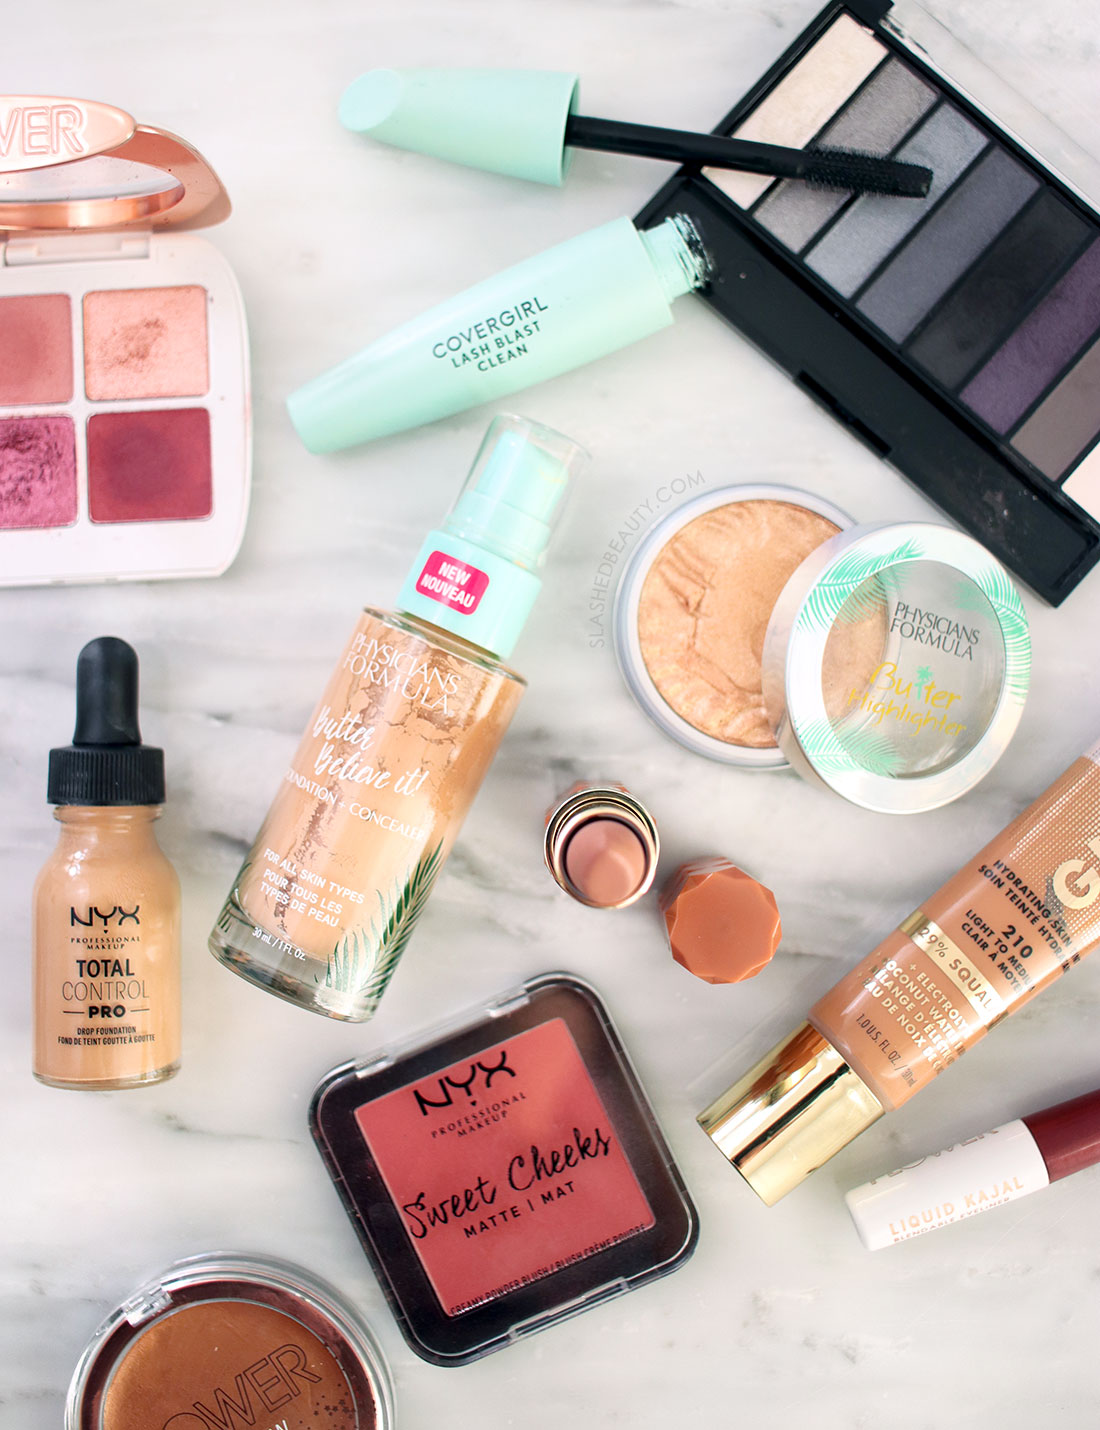 Various cruelty free drugstore makeup products lying flat on a marble surface   My 5 Favorite Cruelty Free Drugstore Makeup Brands   Slashed Beauty